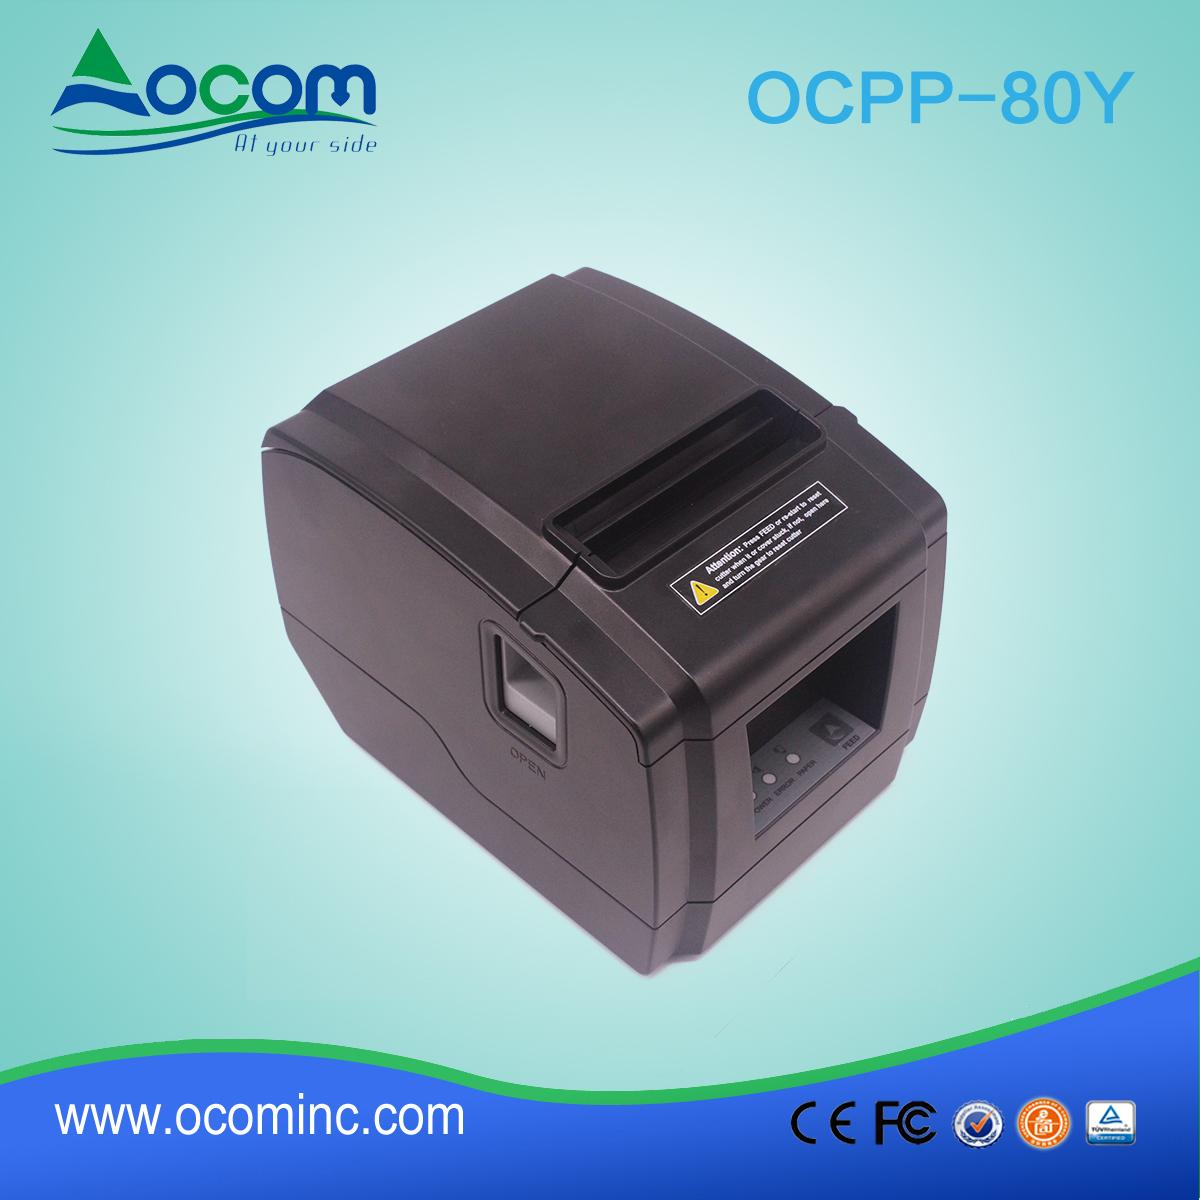 New model 80MM Thermal Printer with Auto Cutter 3